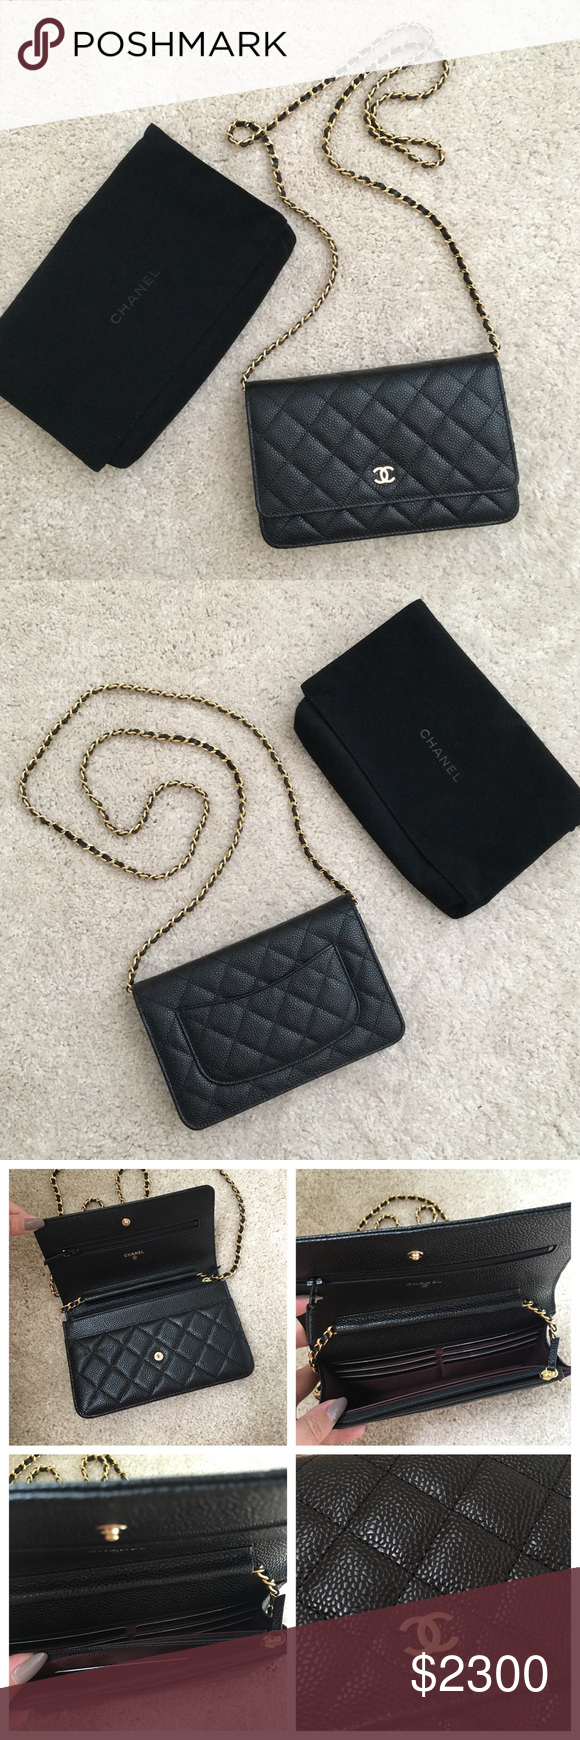 57875c921cc7 Chanel Classic Wallet on Chain WOC Caviar Black Perfect condition. Comes  with authenticity card and dust bag. Long chain for crossbody or shoulder.